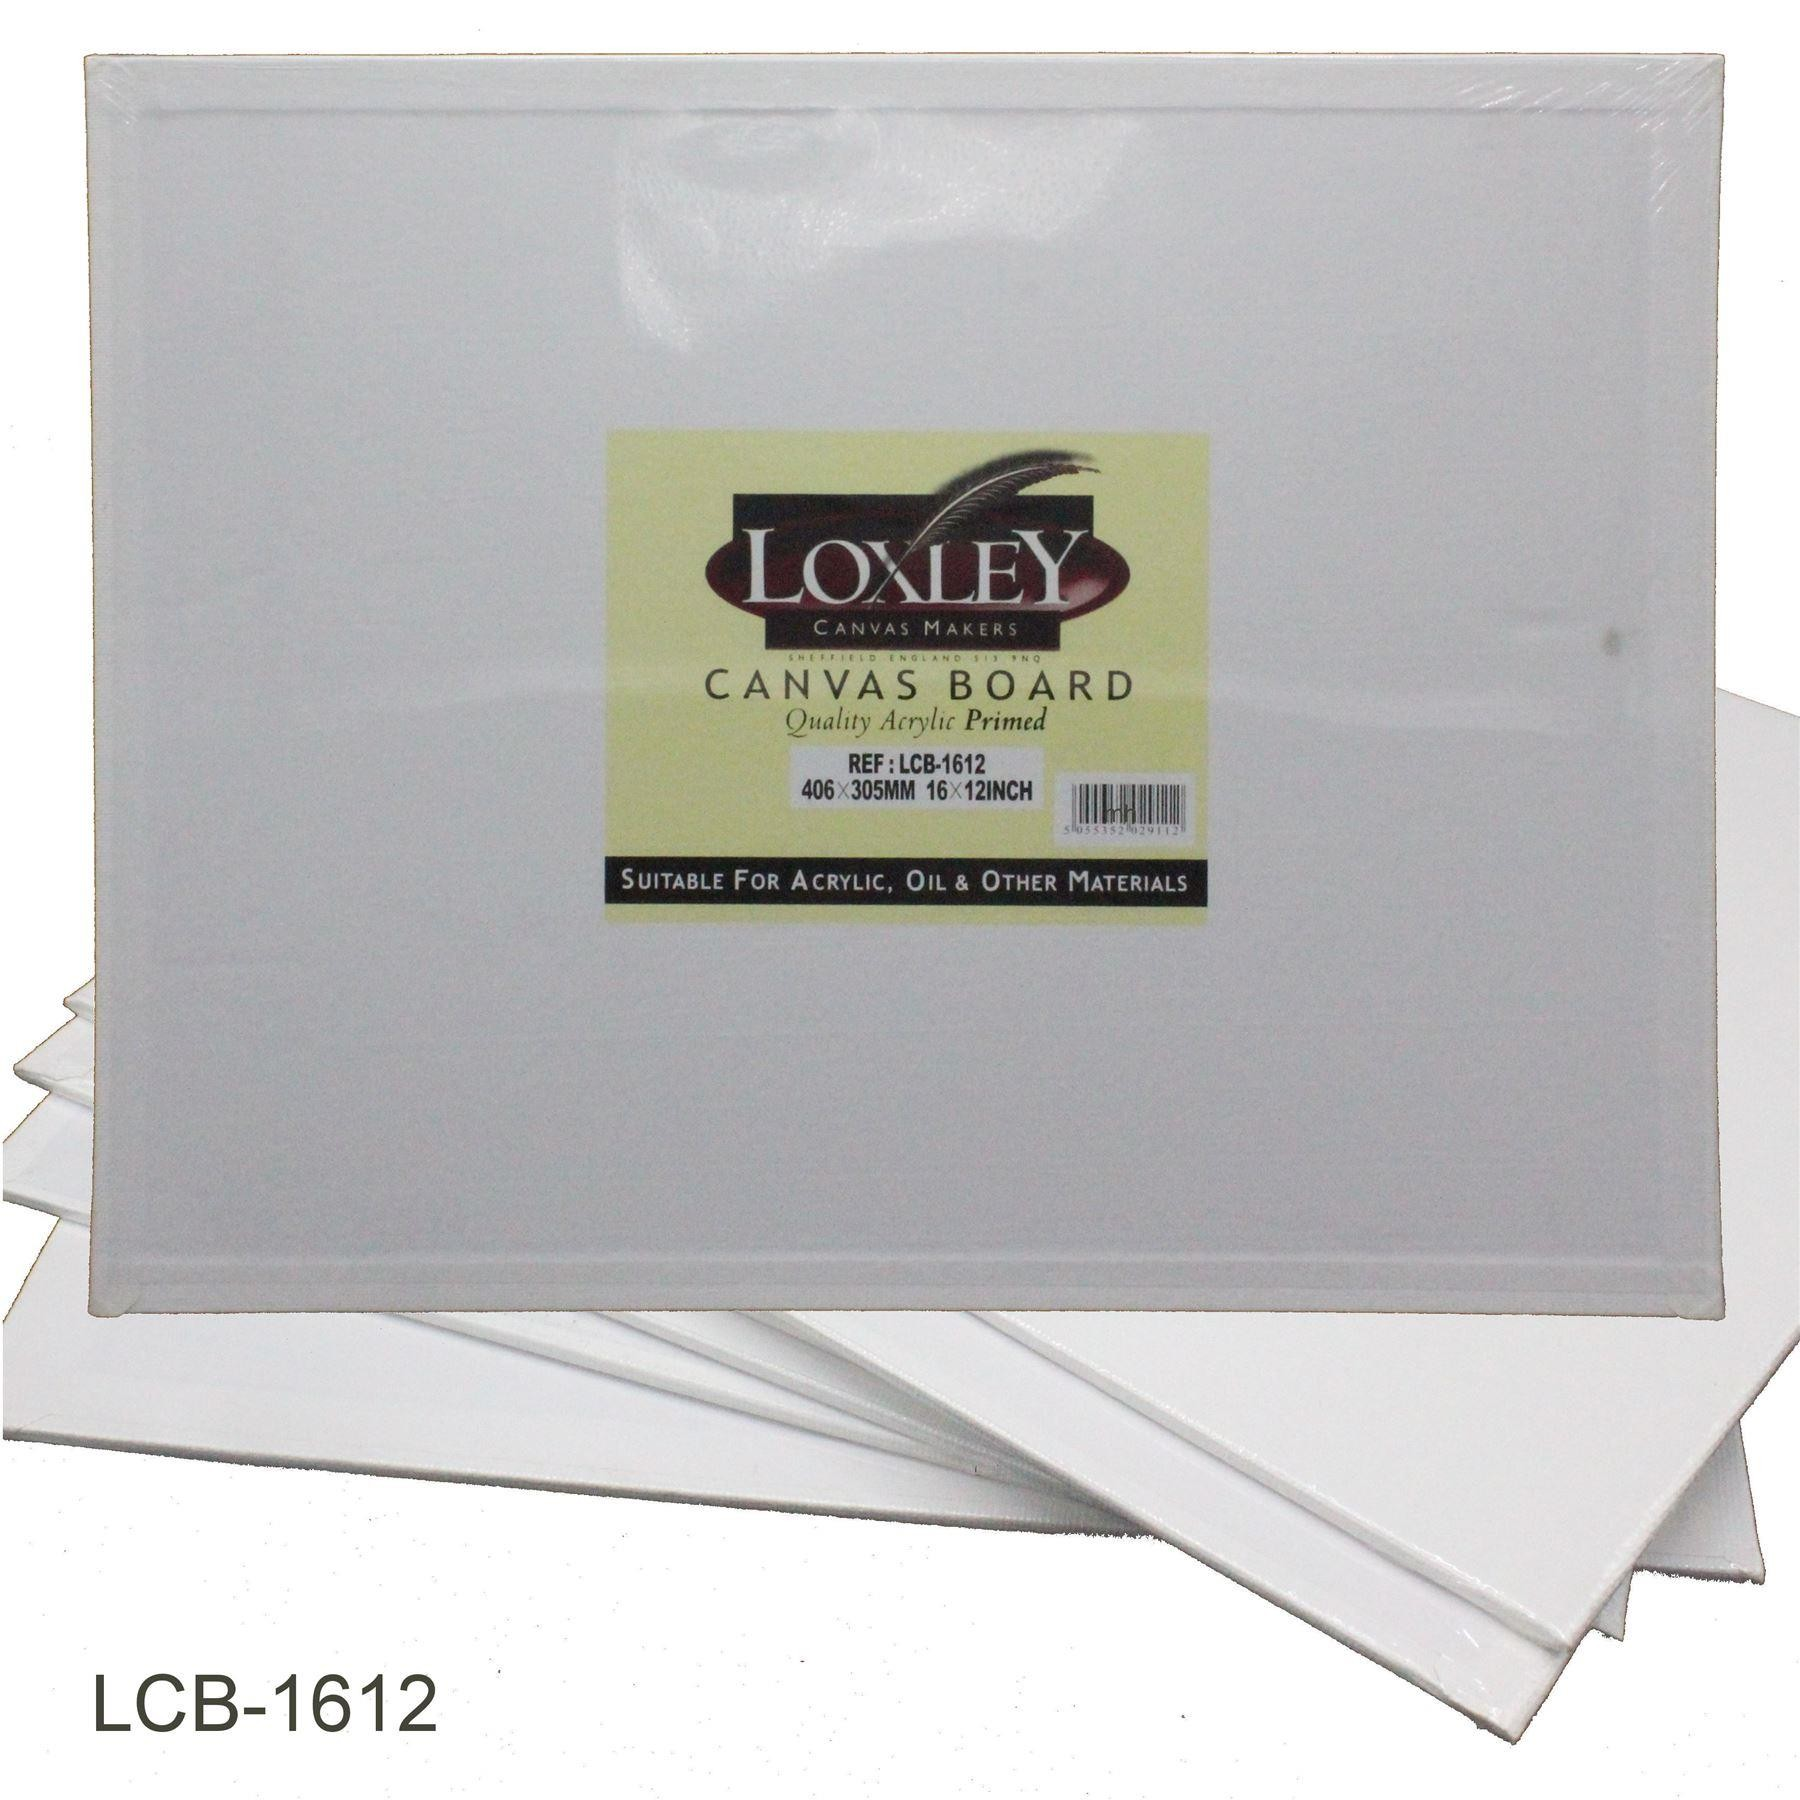 "Quality double primed acrylic canvas board from Loxley - 16"" x 12"""